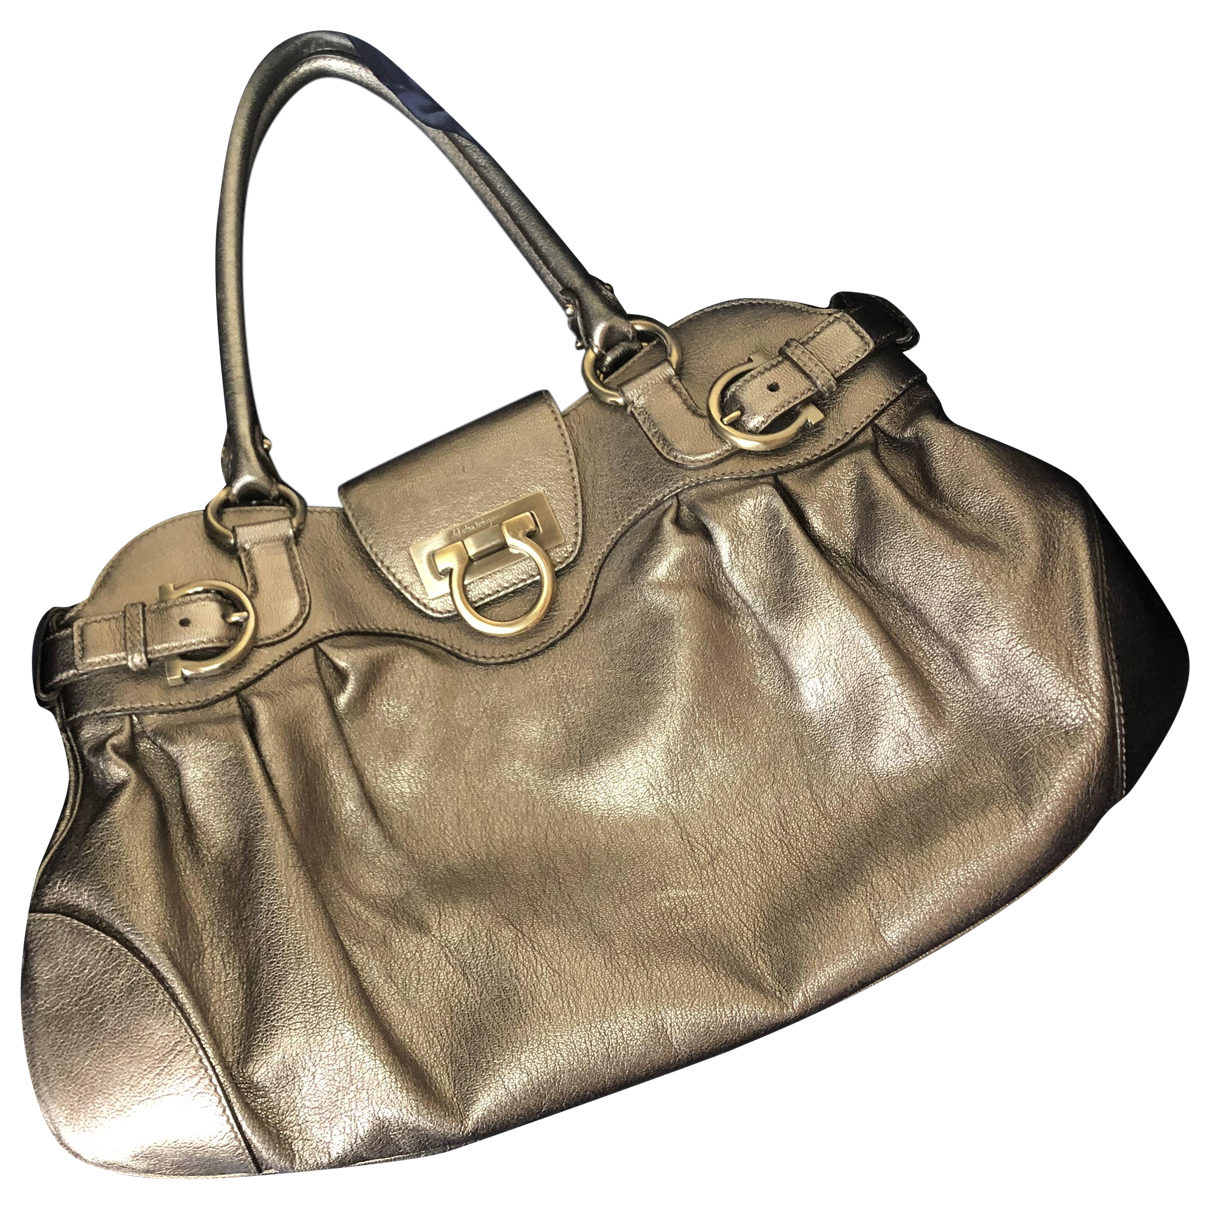 Salvatore Ferragamo \N Metallic Leather handbag for Women \N